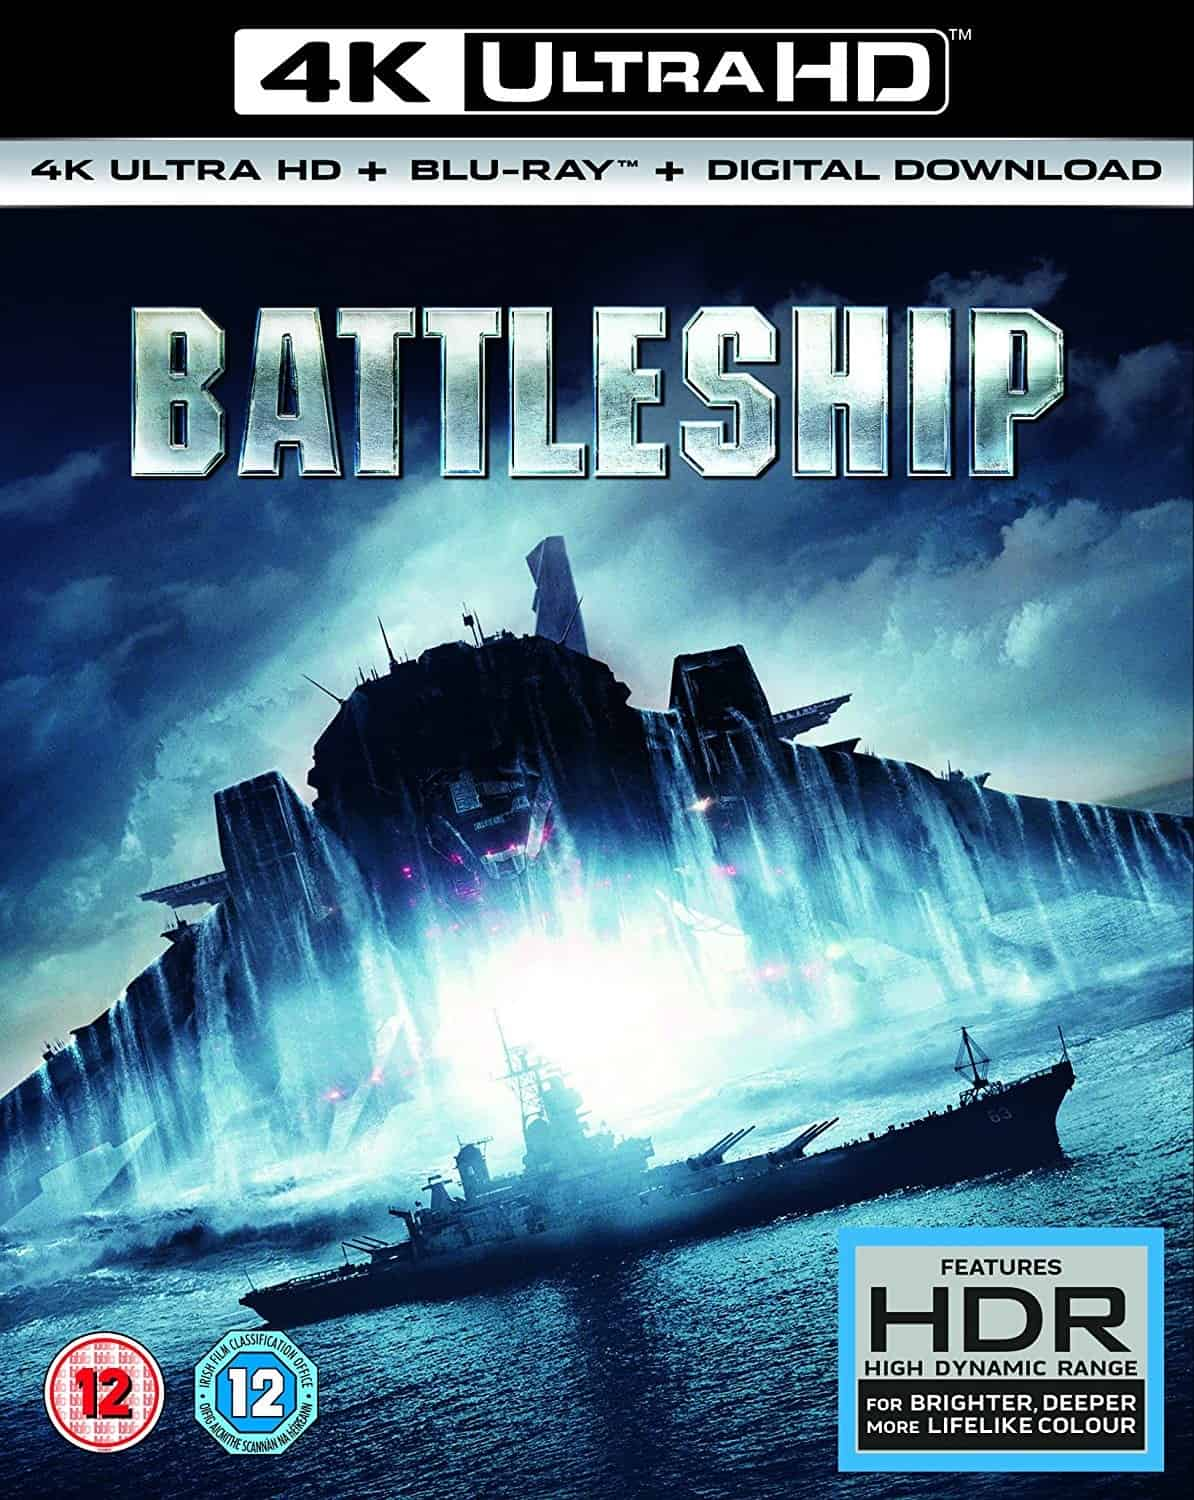 Battleship 4K HDR 2012 Ultra HD RIP 2160p